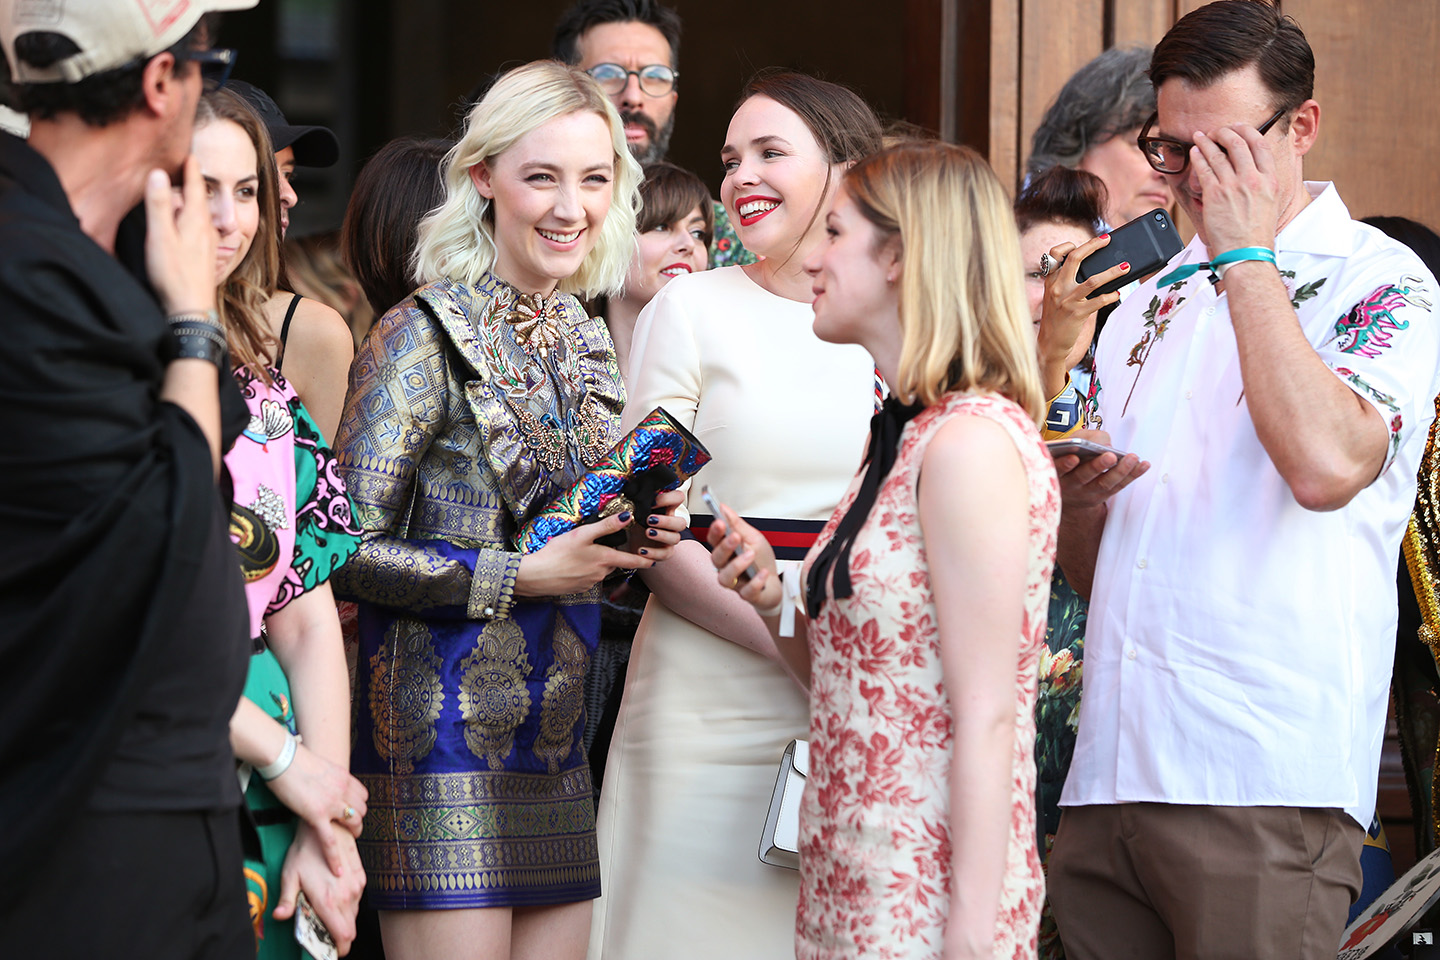 Saoirse Ronan at the Gucci Resort 2018 show in Florence